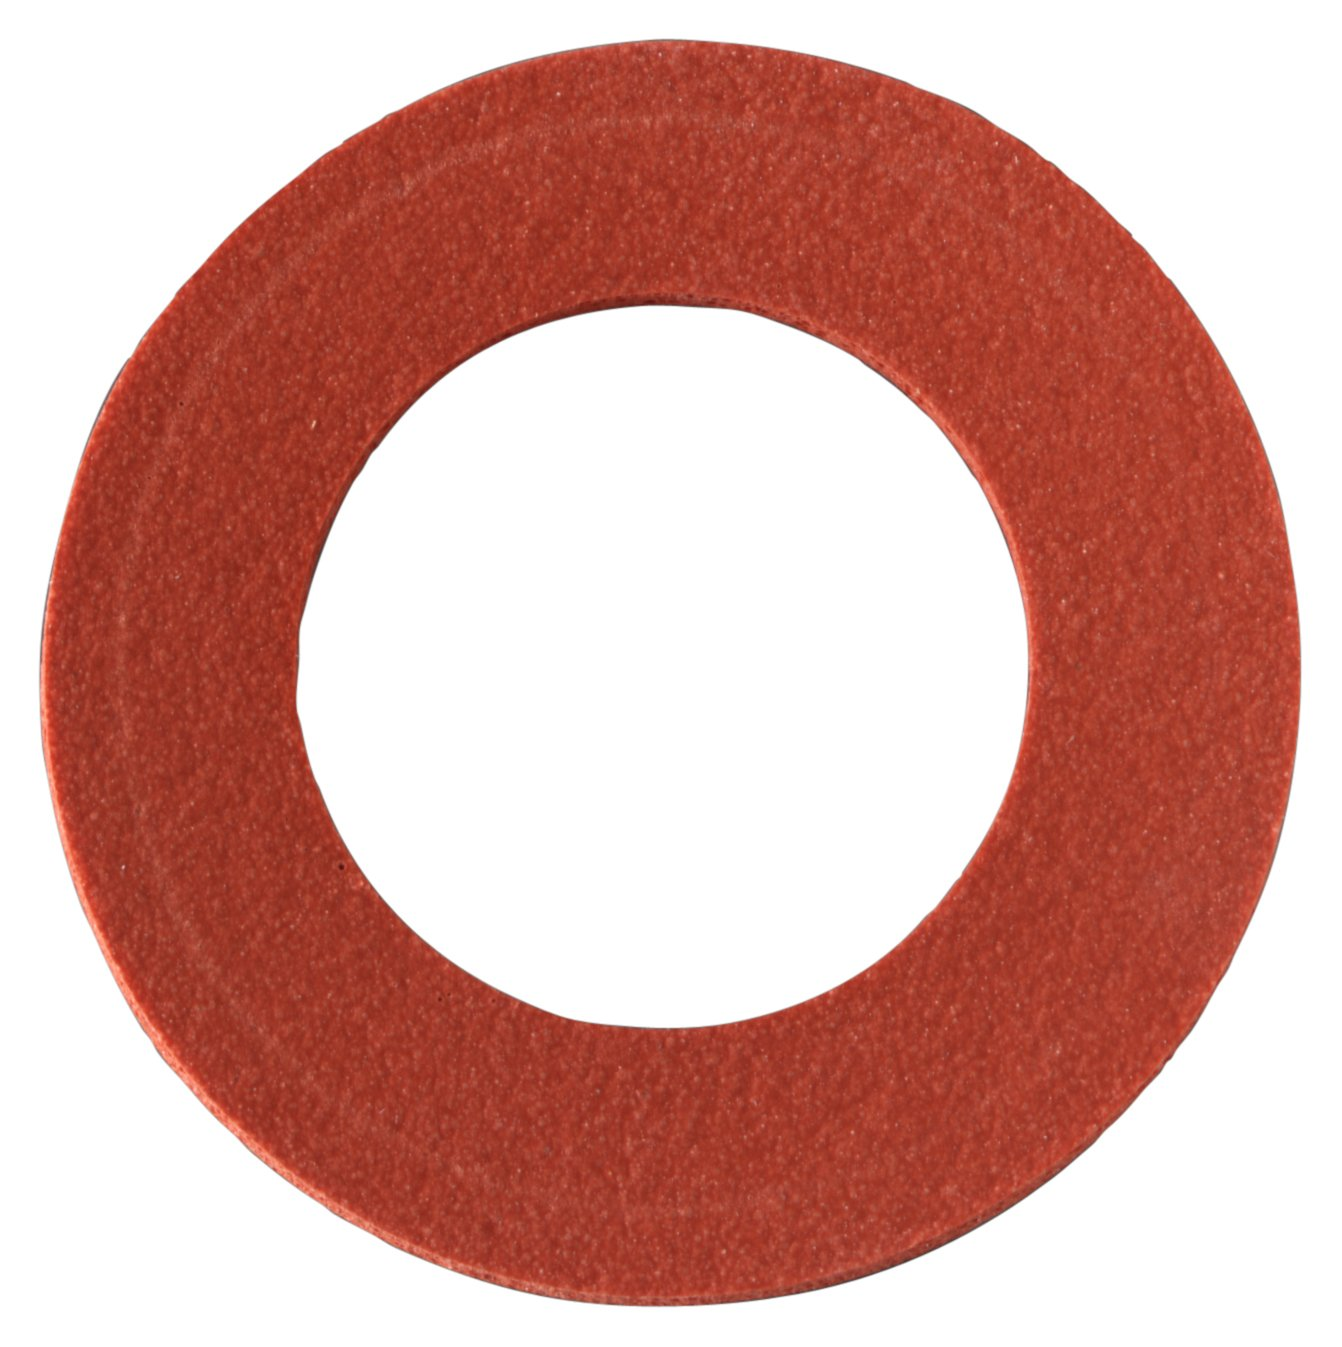 3M Inhalation Port Gasket 6895/07145(AAD), Respiratory Protection Replacement Part  (Case of 80)